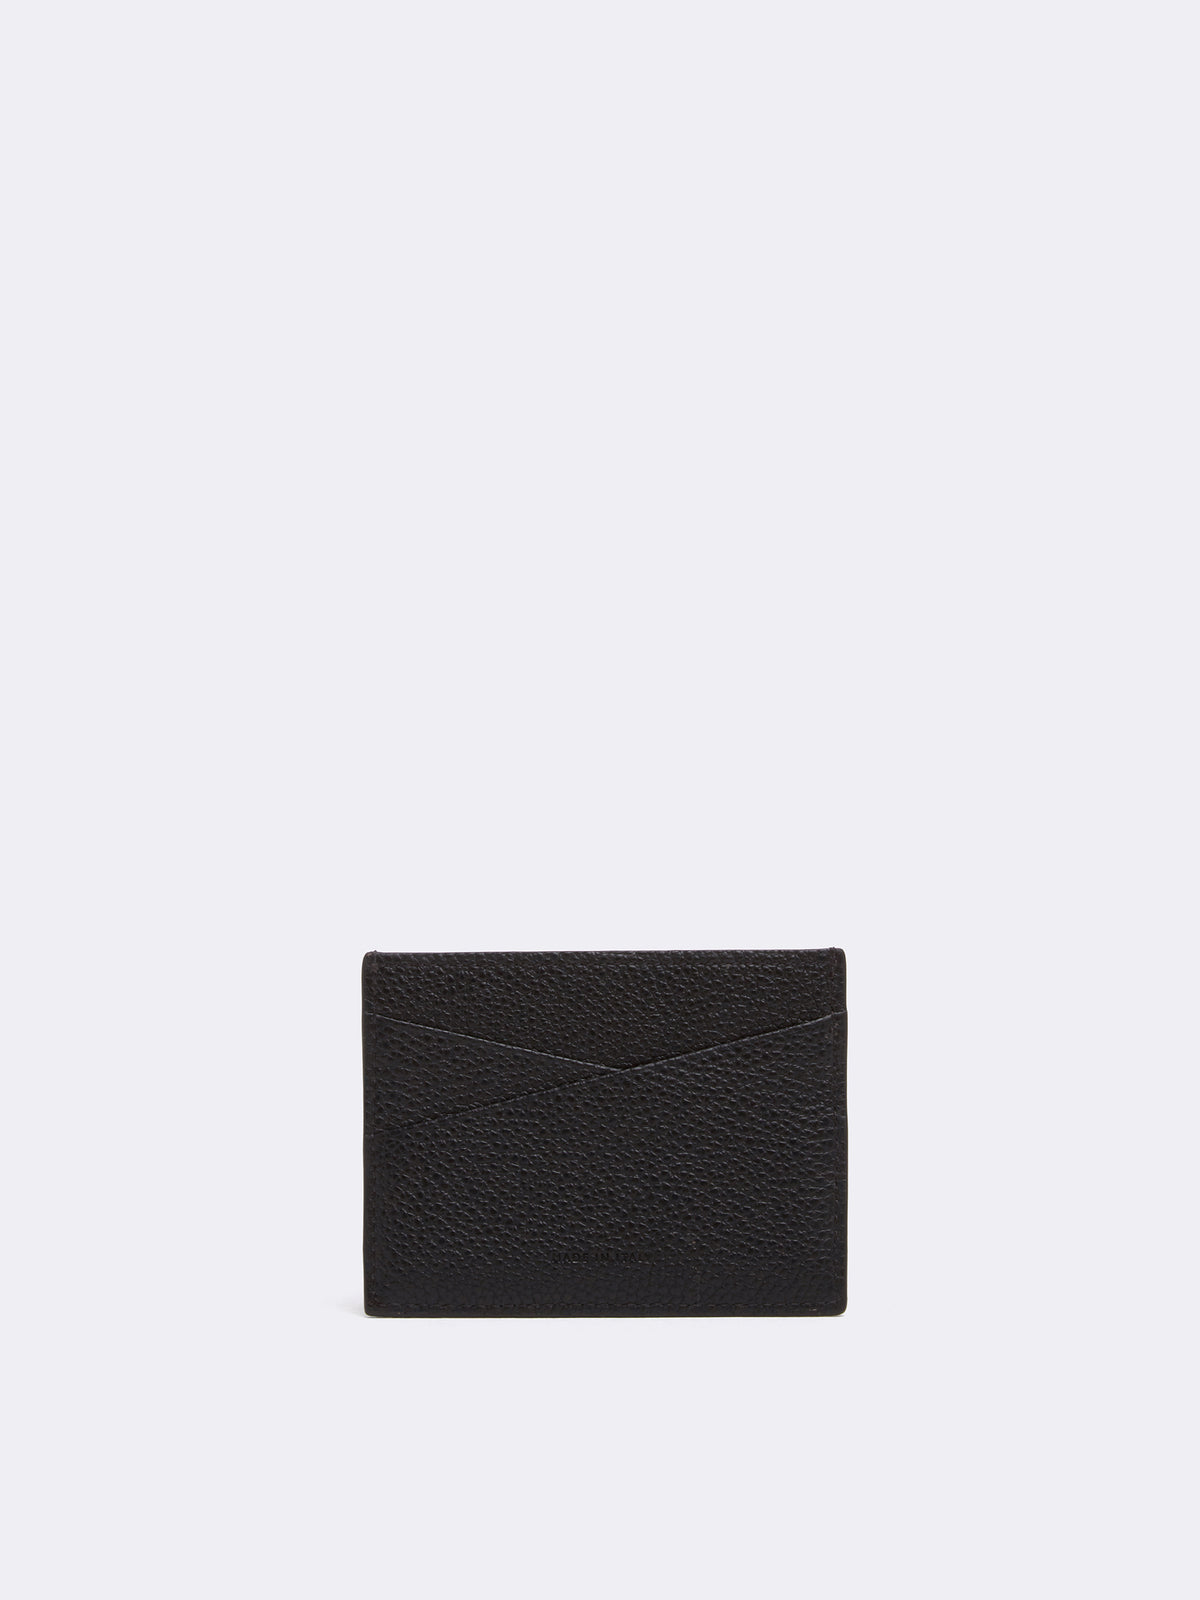 Mark Cross Leather Card Case Tumbled Grain Black Detail